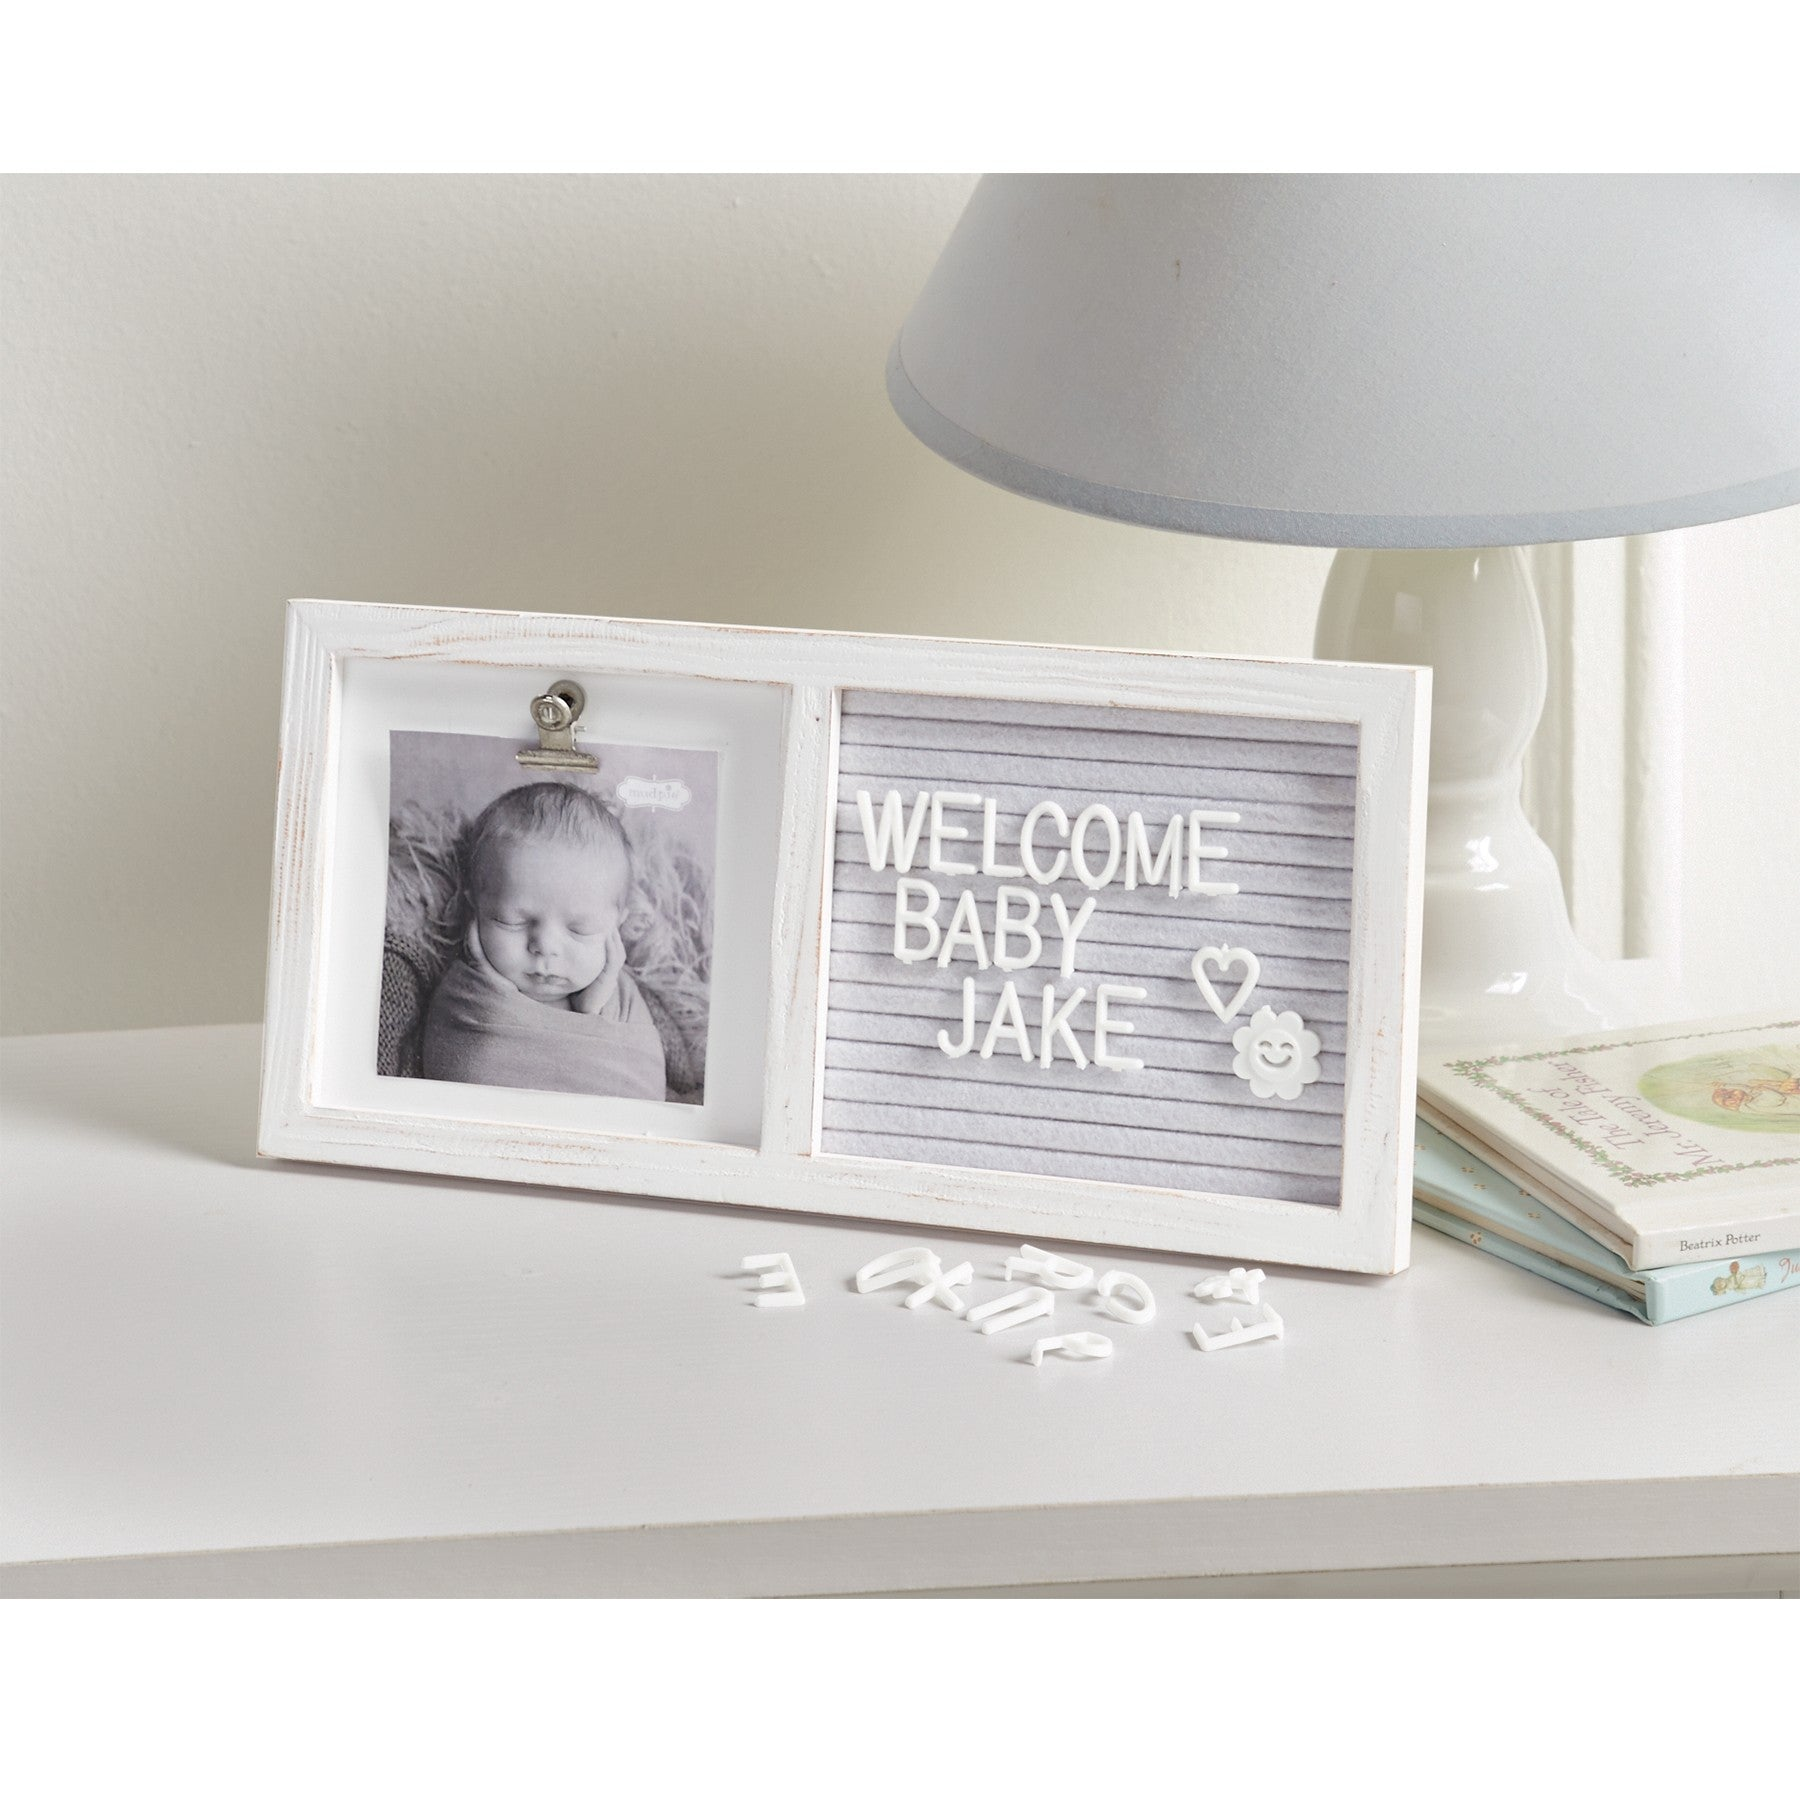 "alt=""White wooden binder clip 4"" x 4"" frame features grey felt message board panel and arrives with assorted interchangeable letter set to customize display message"""